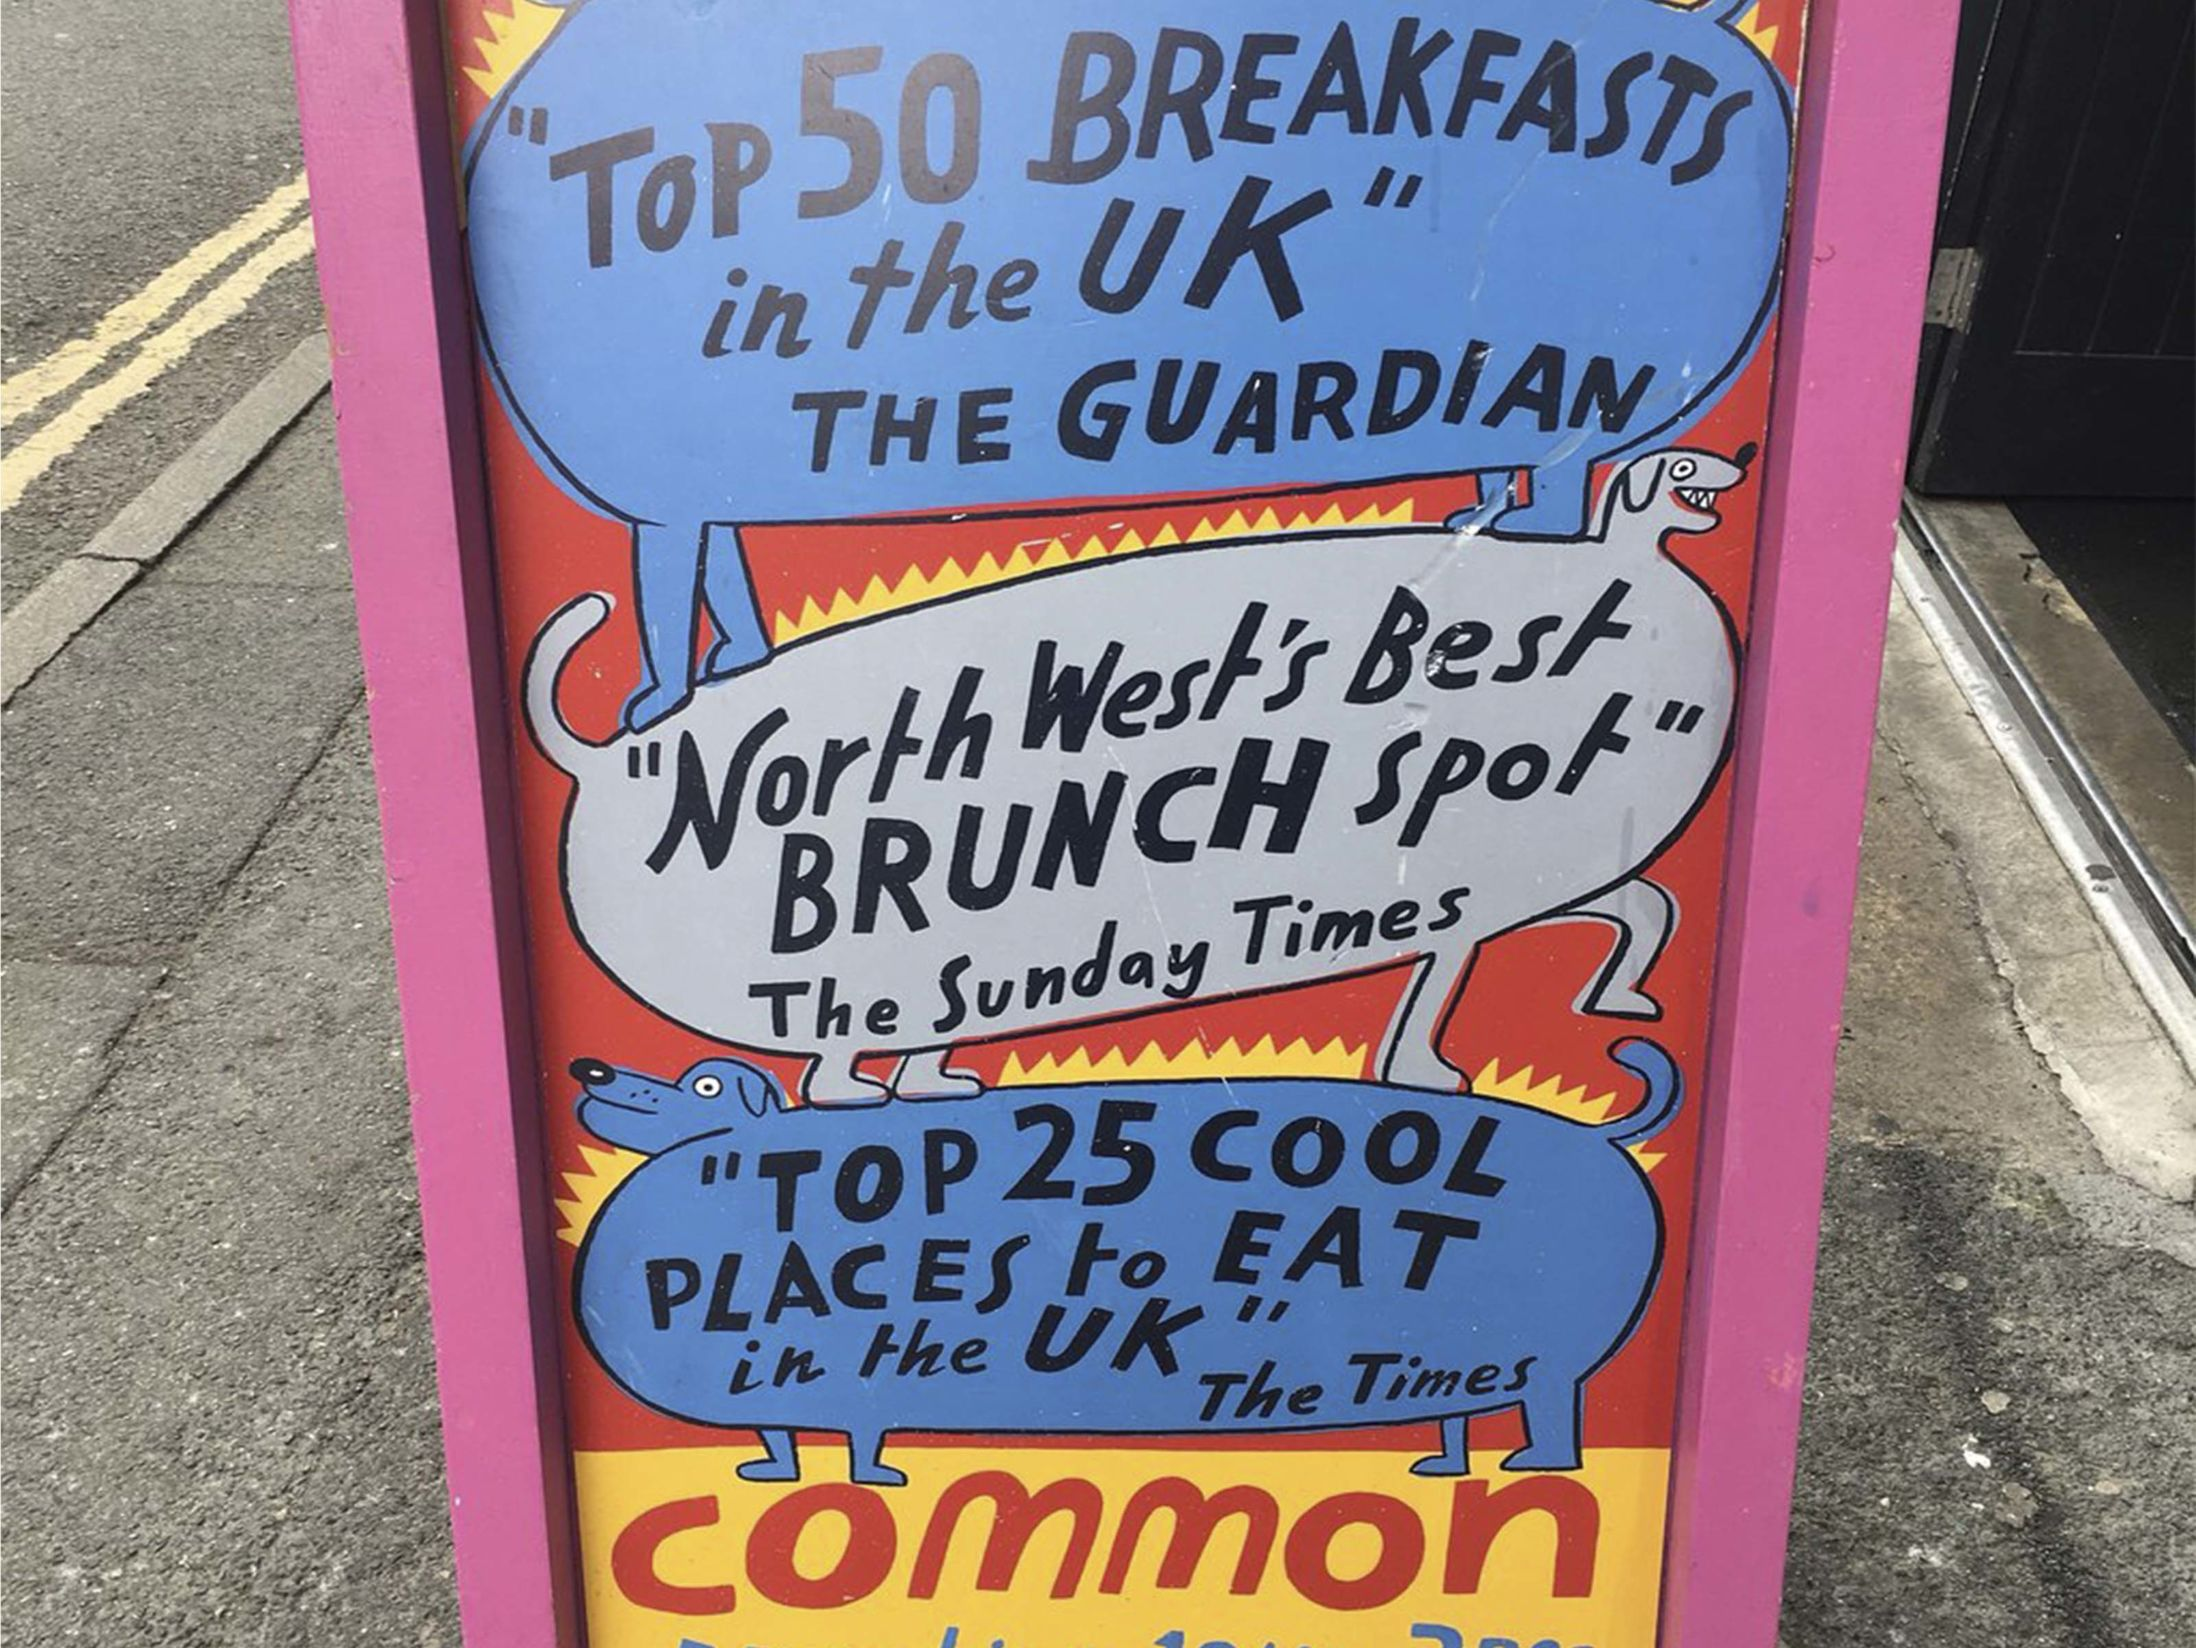 Best Breakfast in Manchester - Common